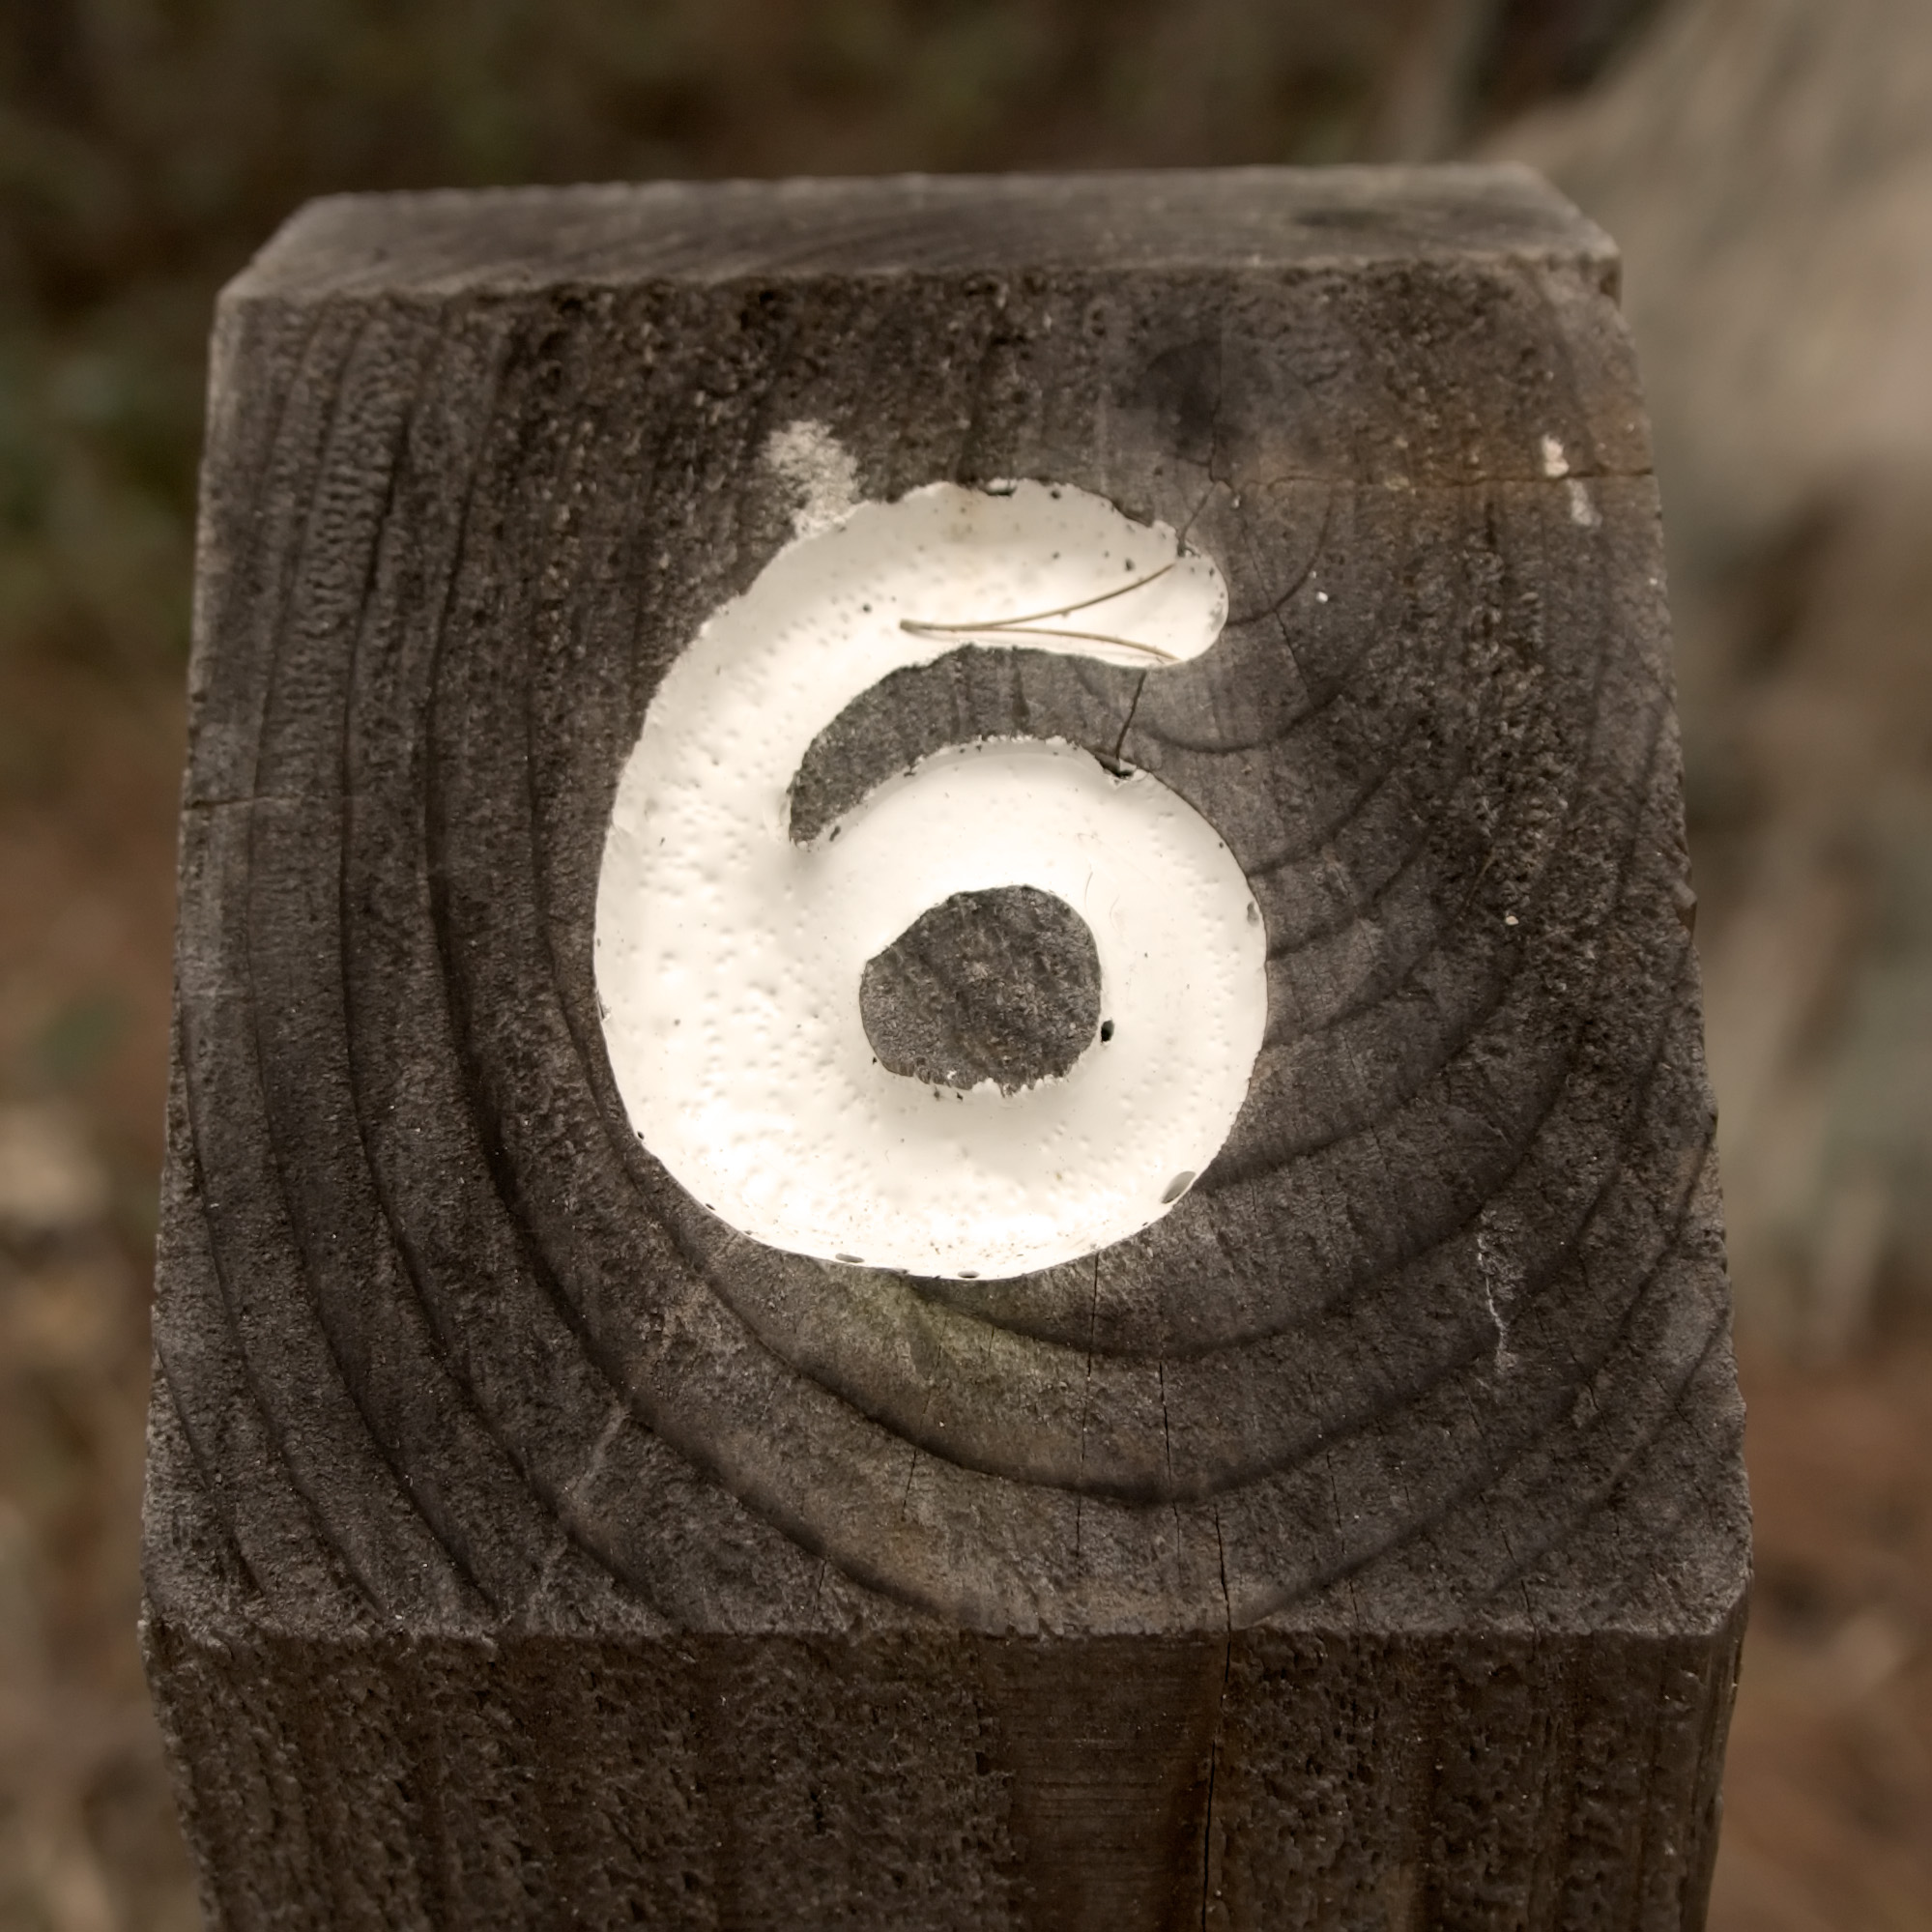 Nature's_Number_6.jpg